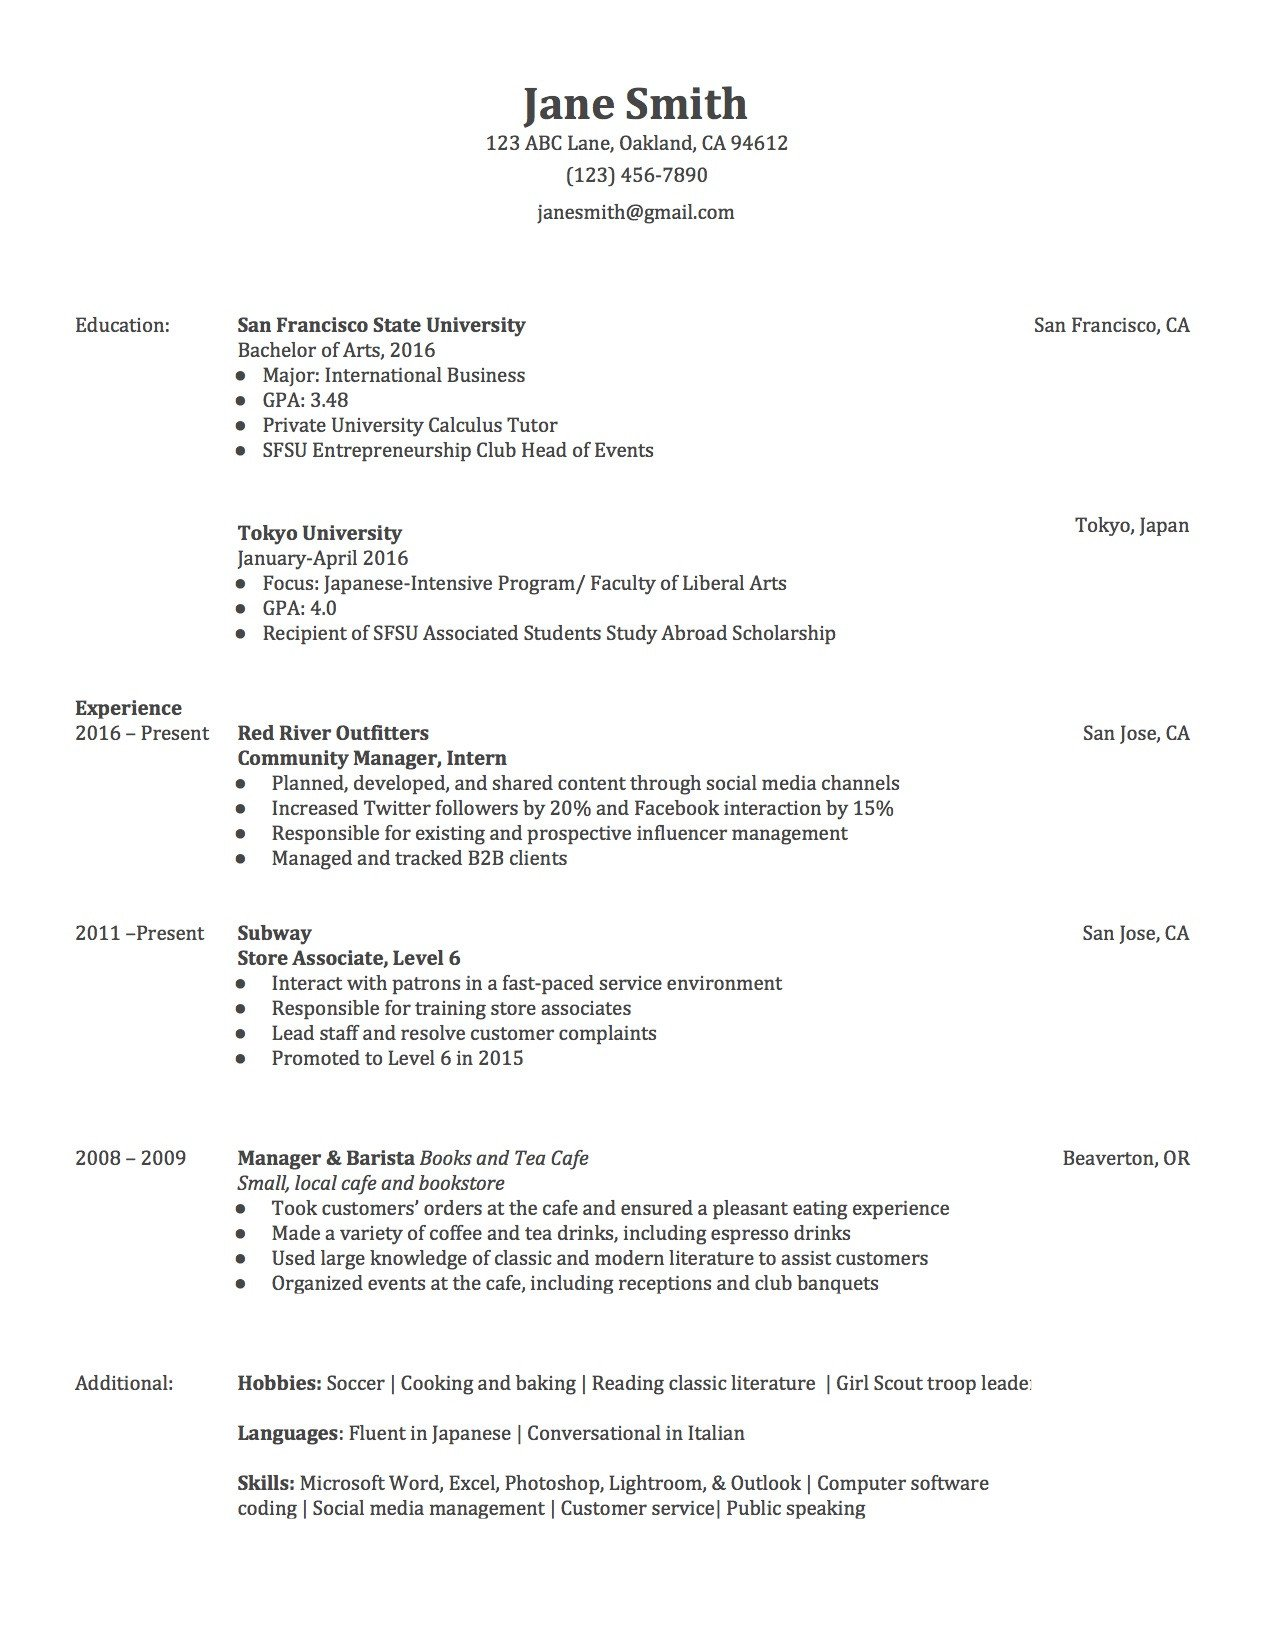 Free Sample Resume Templates 3 Actually Free Resume Templates Localwise